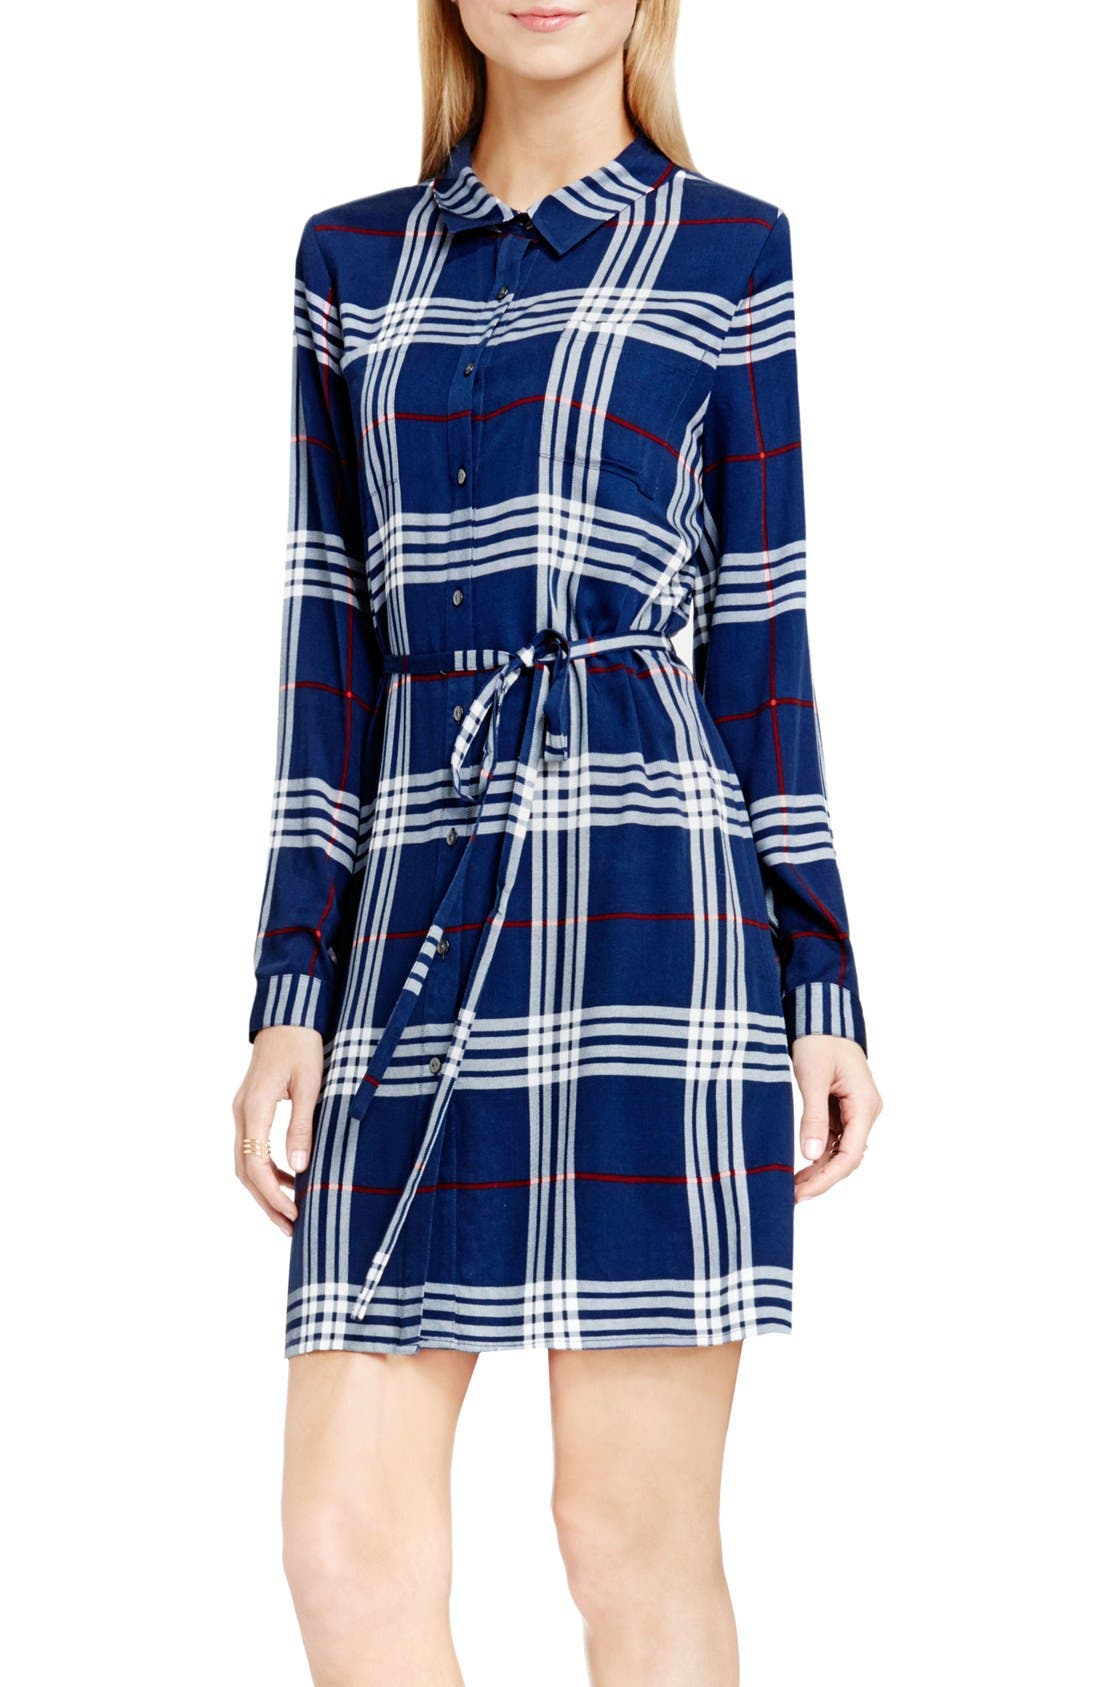 Alternate Image 1 Selected - Two by Vince Camuto Plaid Shirtdress